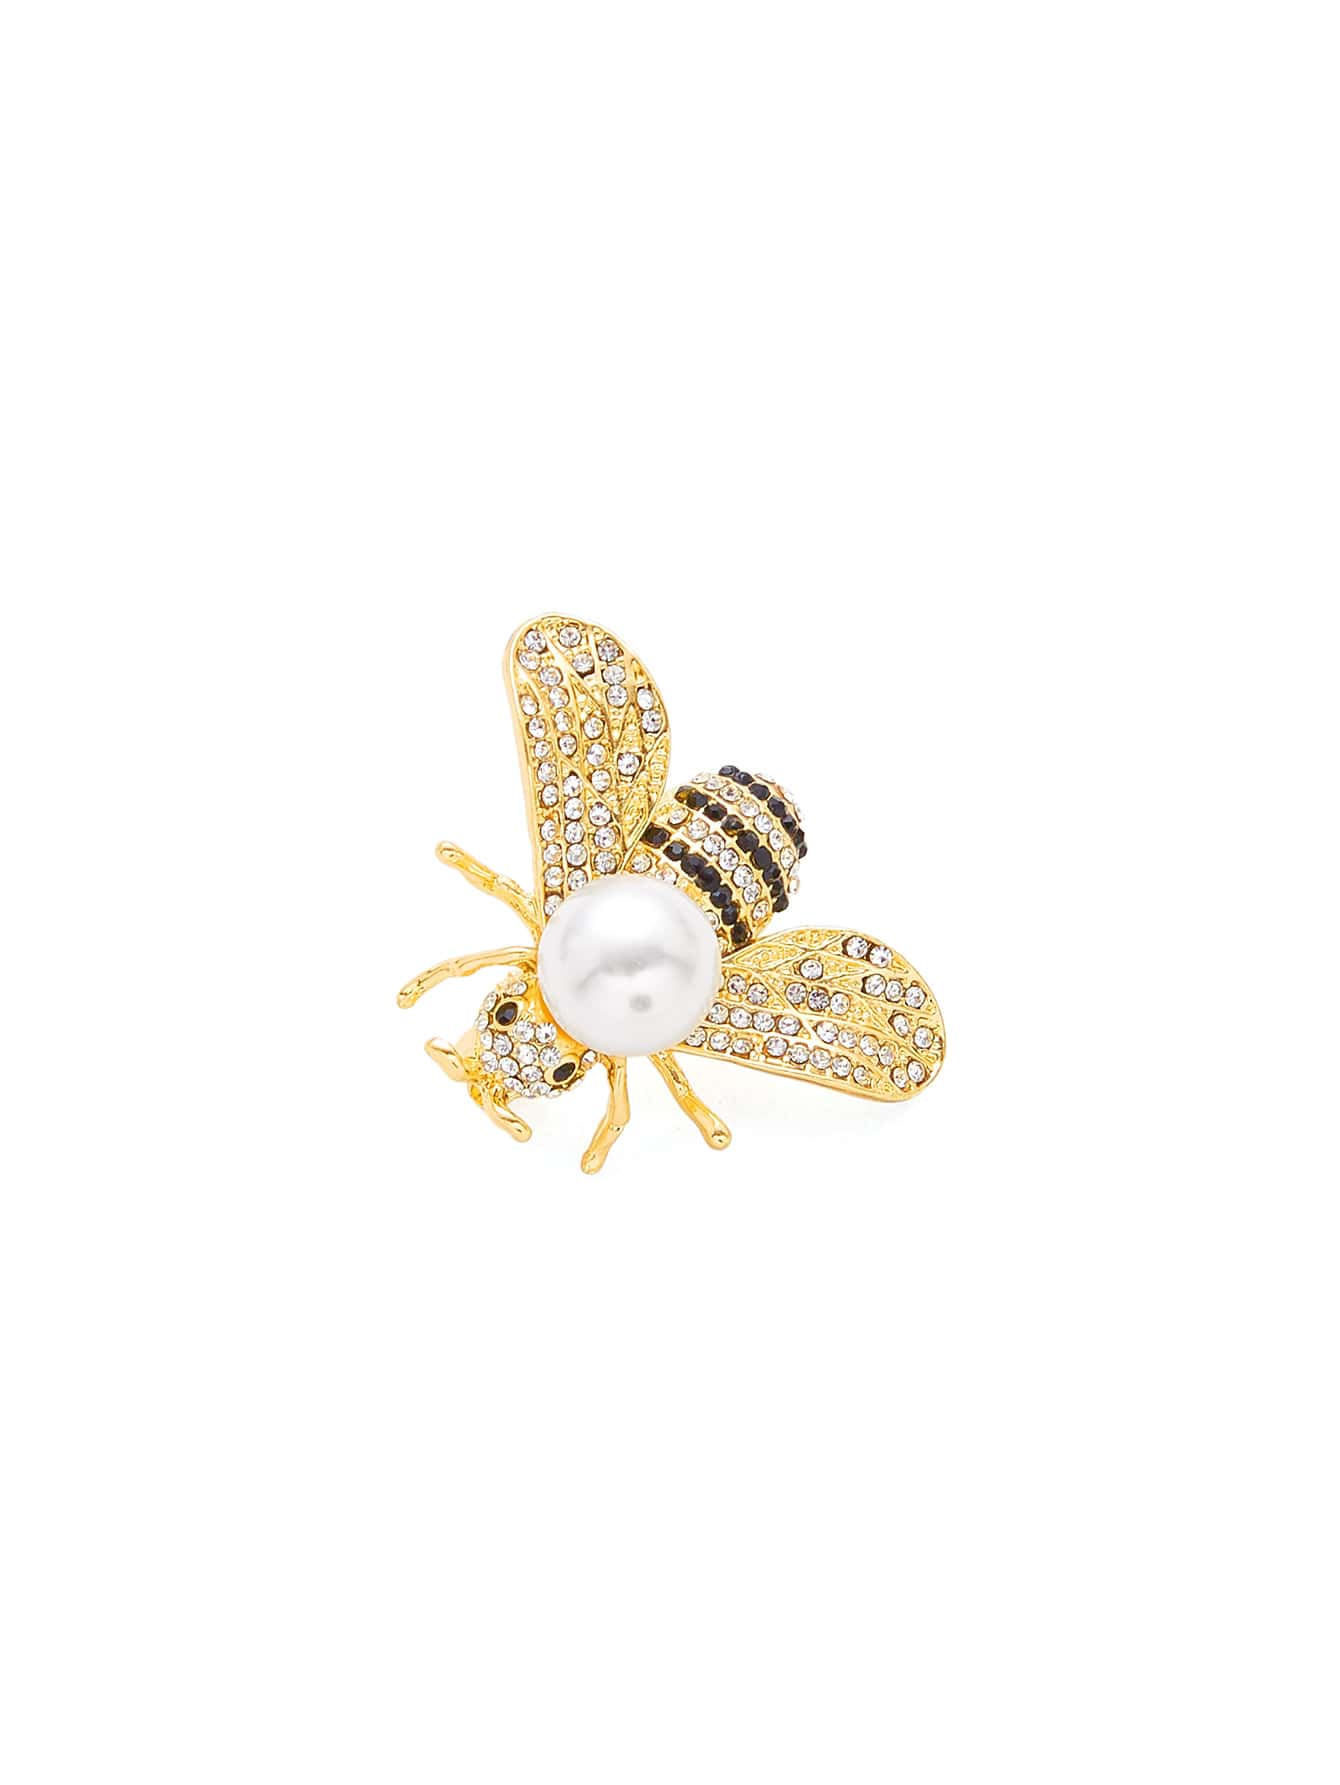 Bee Design Brooch With Jewelry